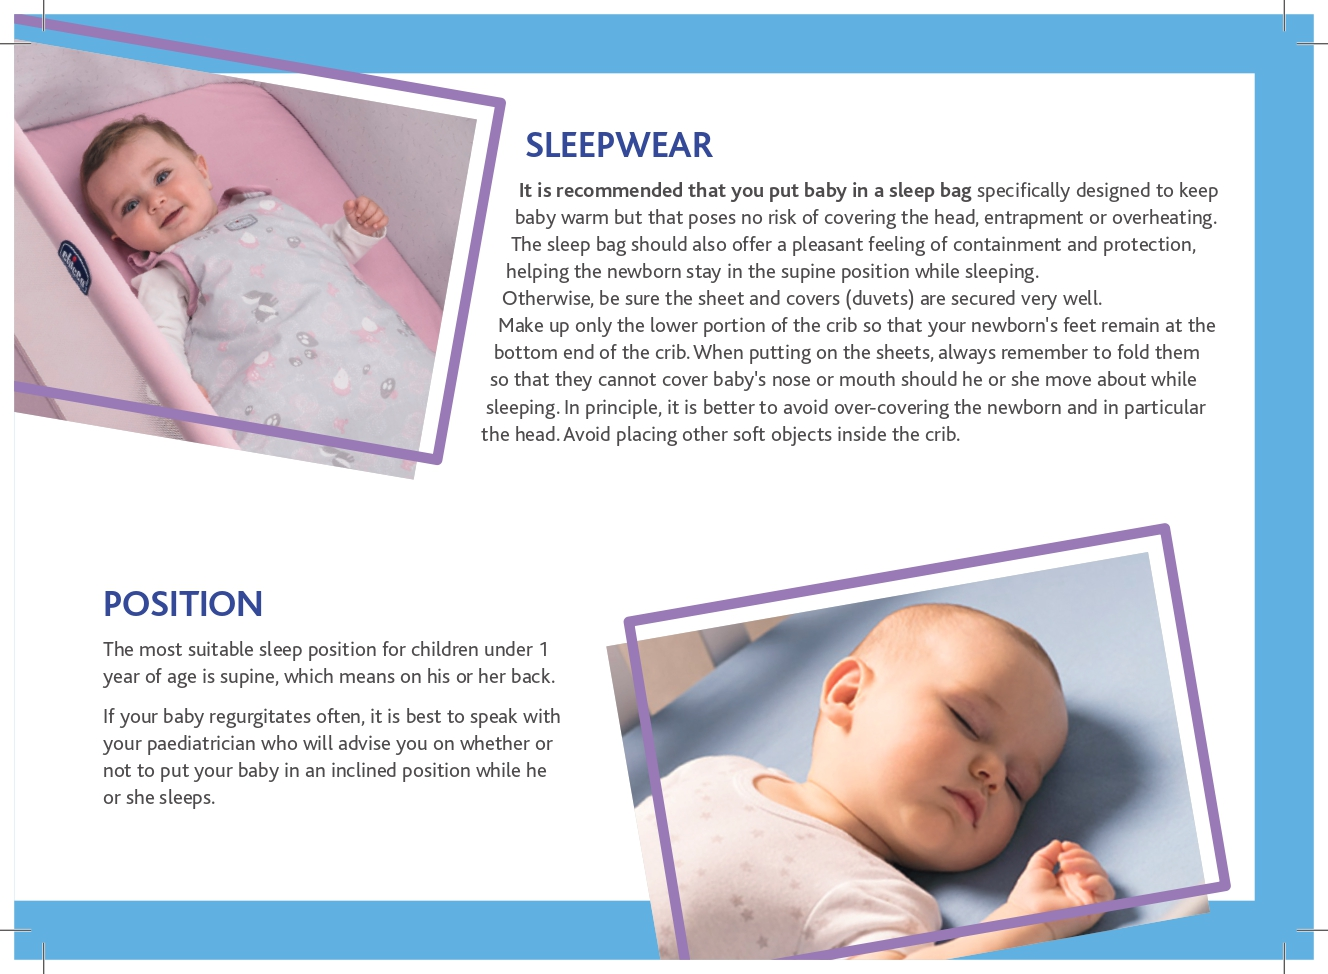 sleep-guide2019-eng-osservatorio-chicco-080319-page-0007.jpg